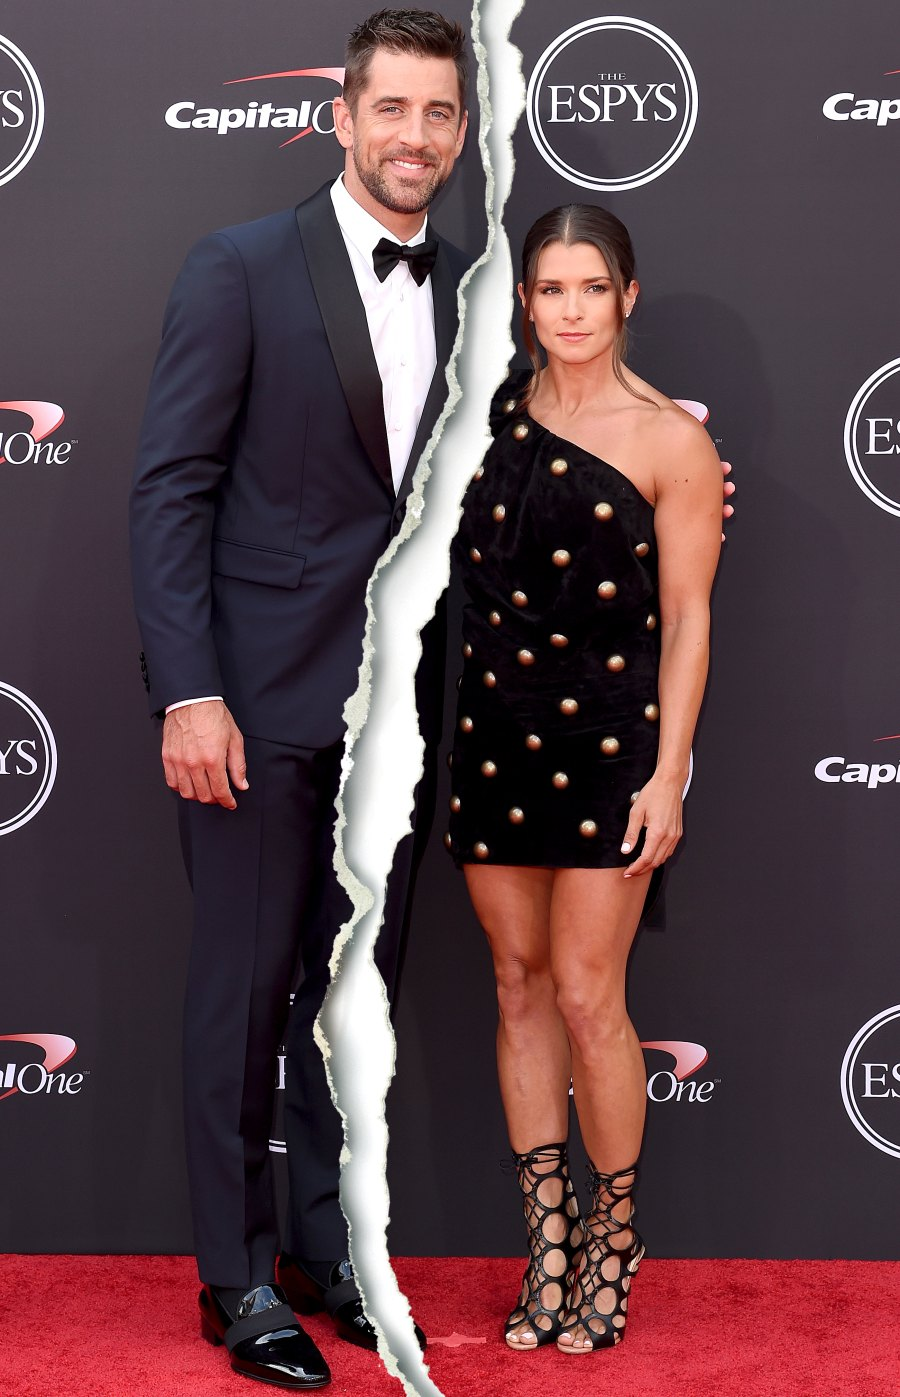 Aaron Rodgers Danica Patrick Split After 2 Years Together